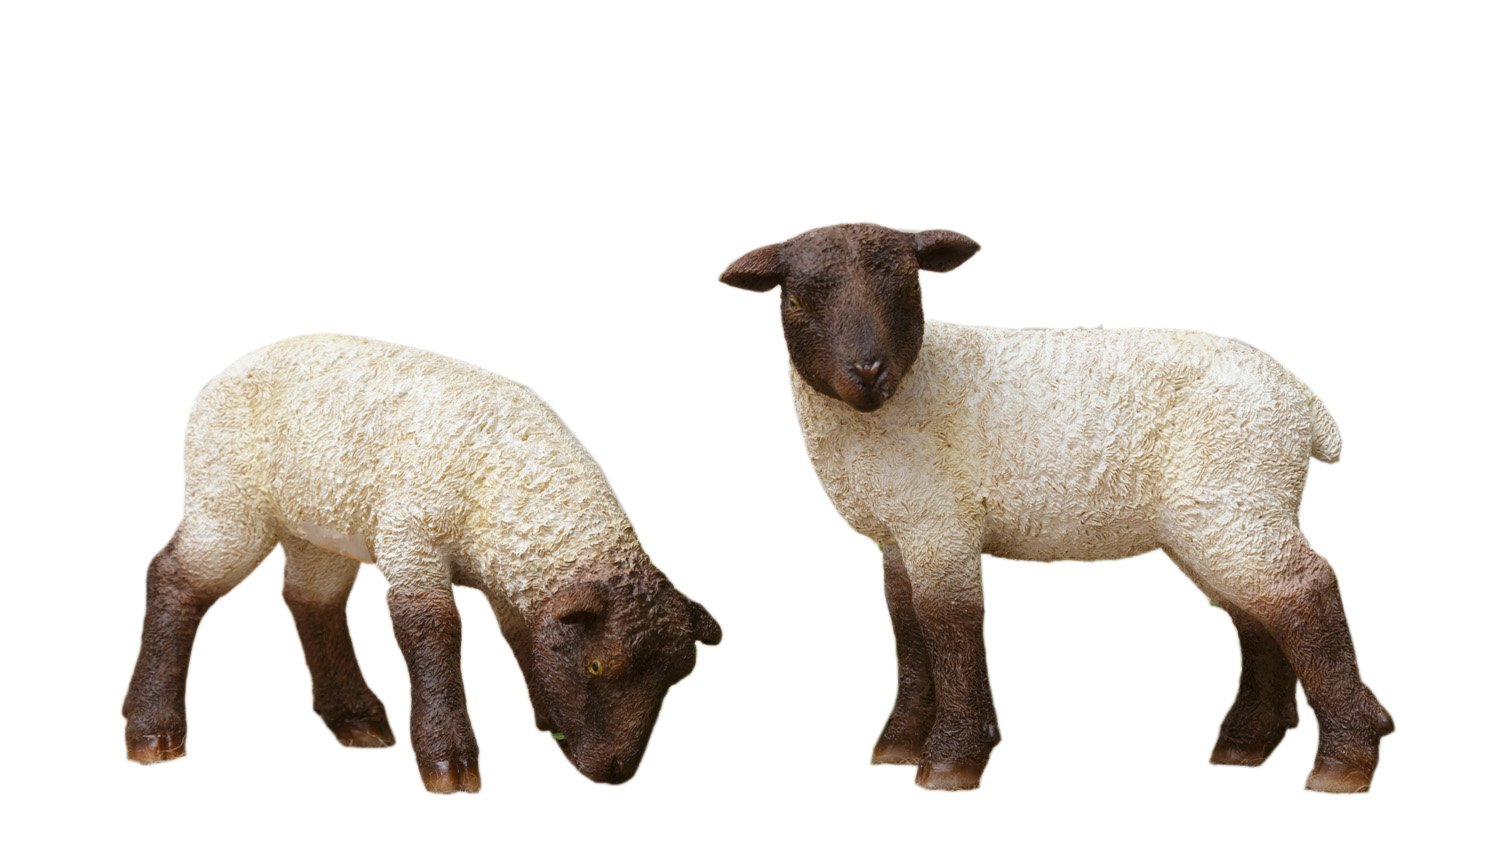 Your Heart's Delight Grazing Sheep Couple Décorative Accent (Set of 2), 6 x 2 x 4